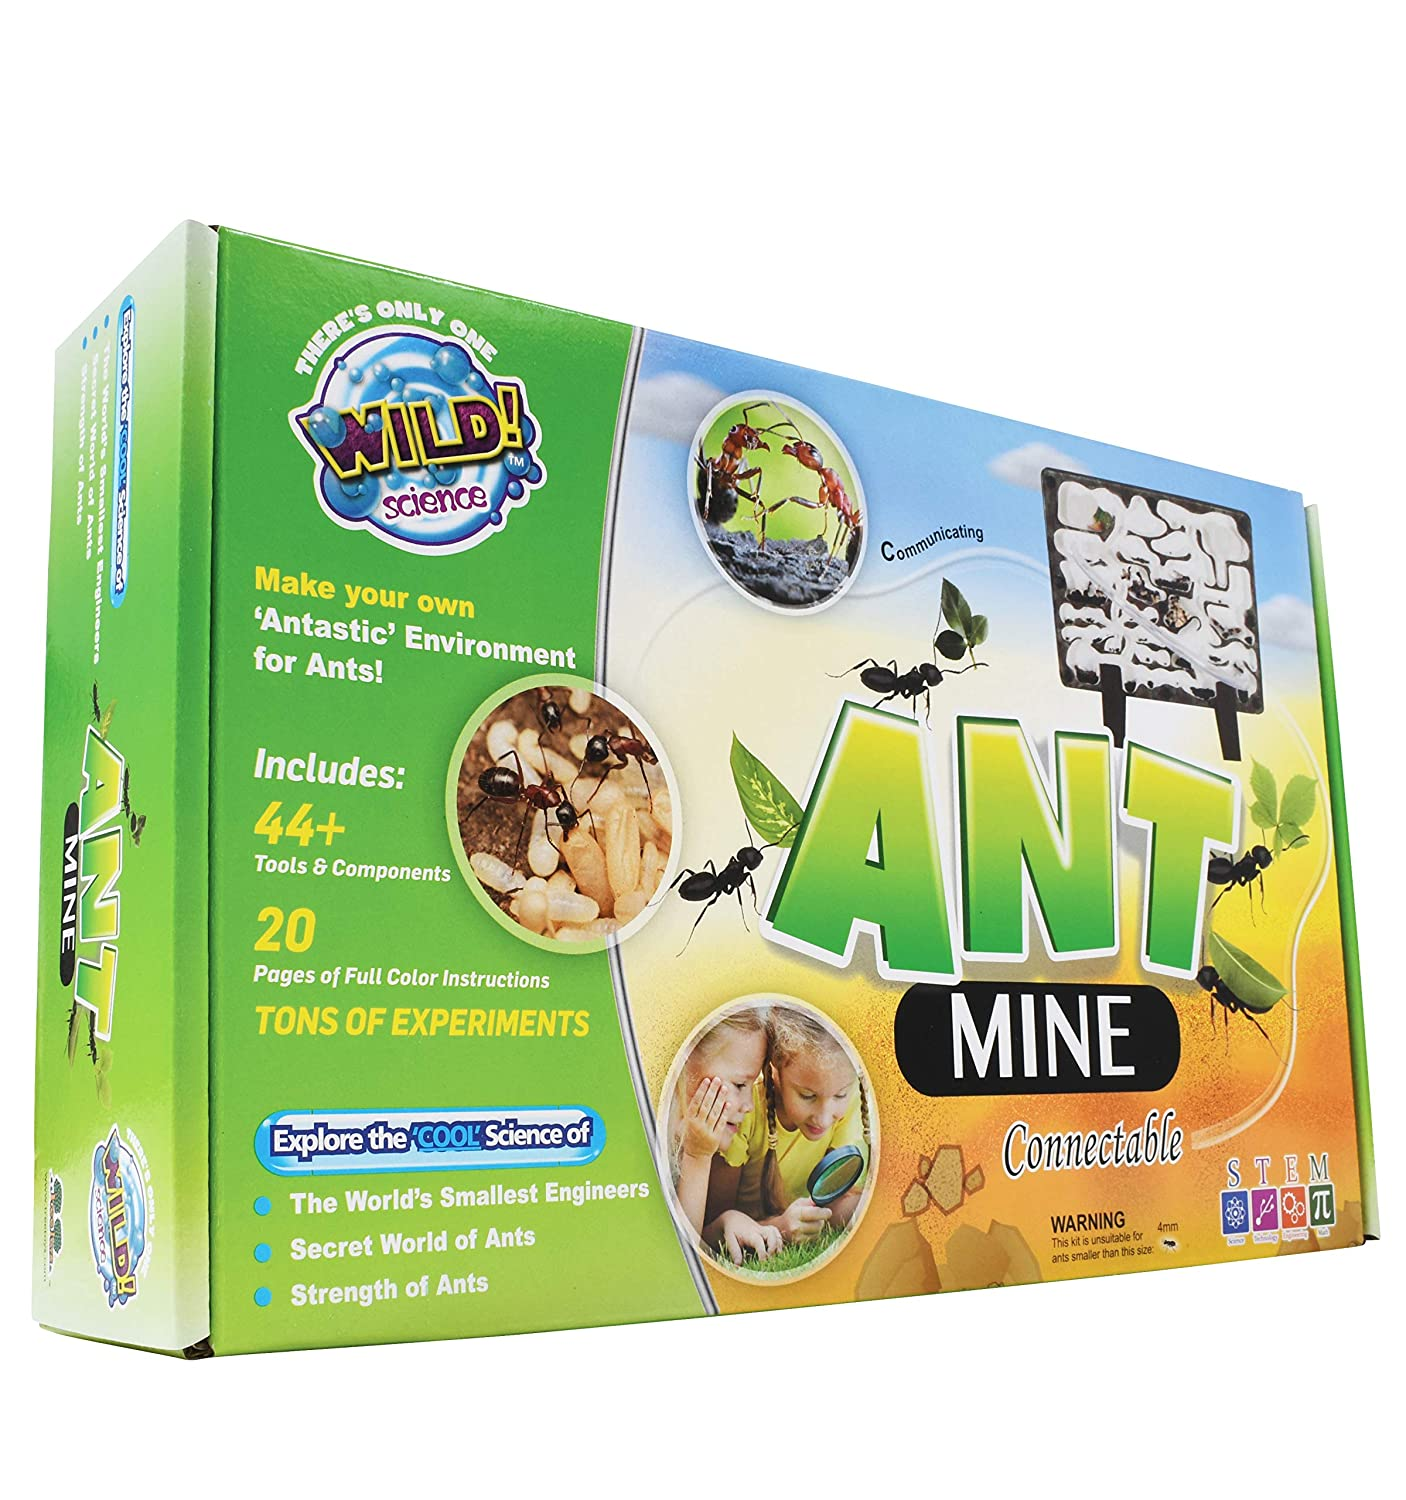 WILD! Science Ant Mine - Make Your Own Ant Farm for Ages 6+ - Includes Casting Plaster, Multi-Chamber Ant Colony Mold, Viewing Window, Full-Color Instruction Booklet and More!